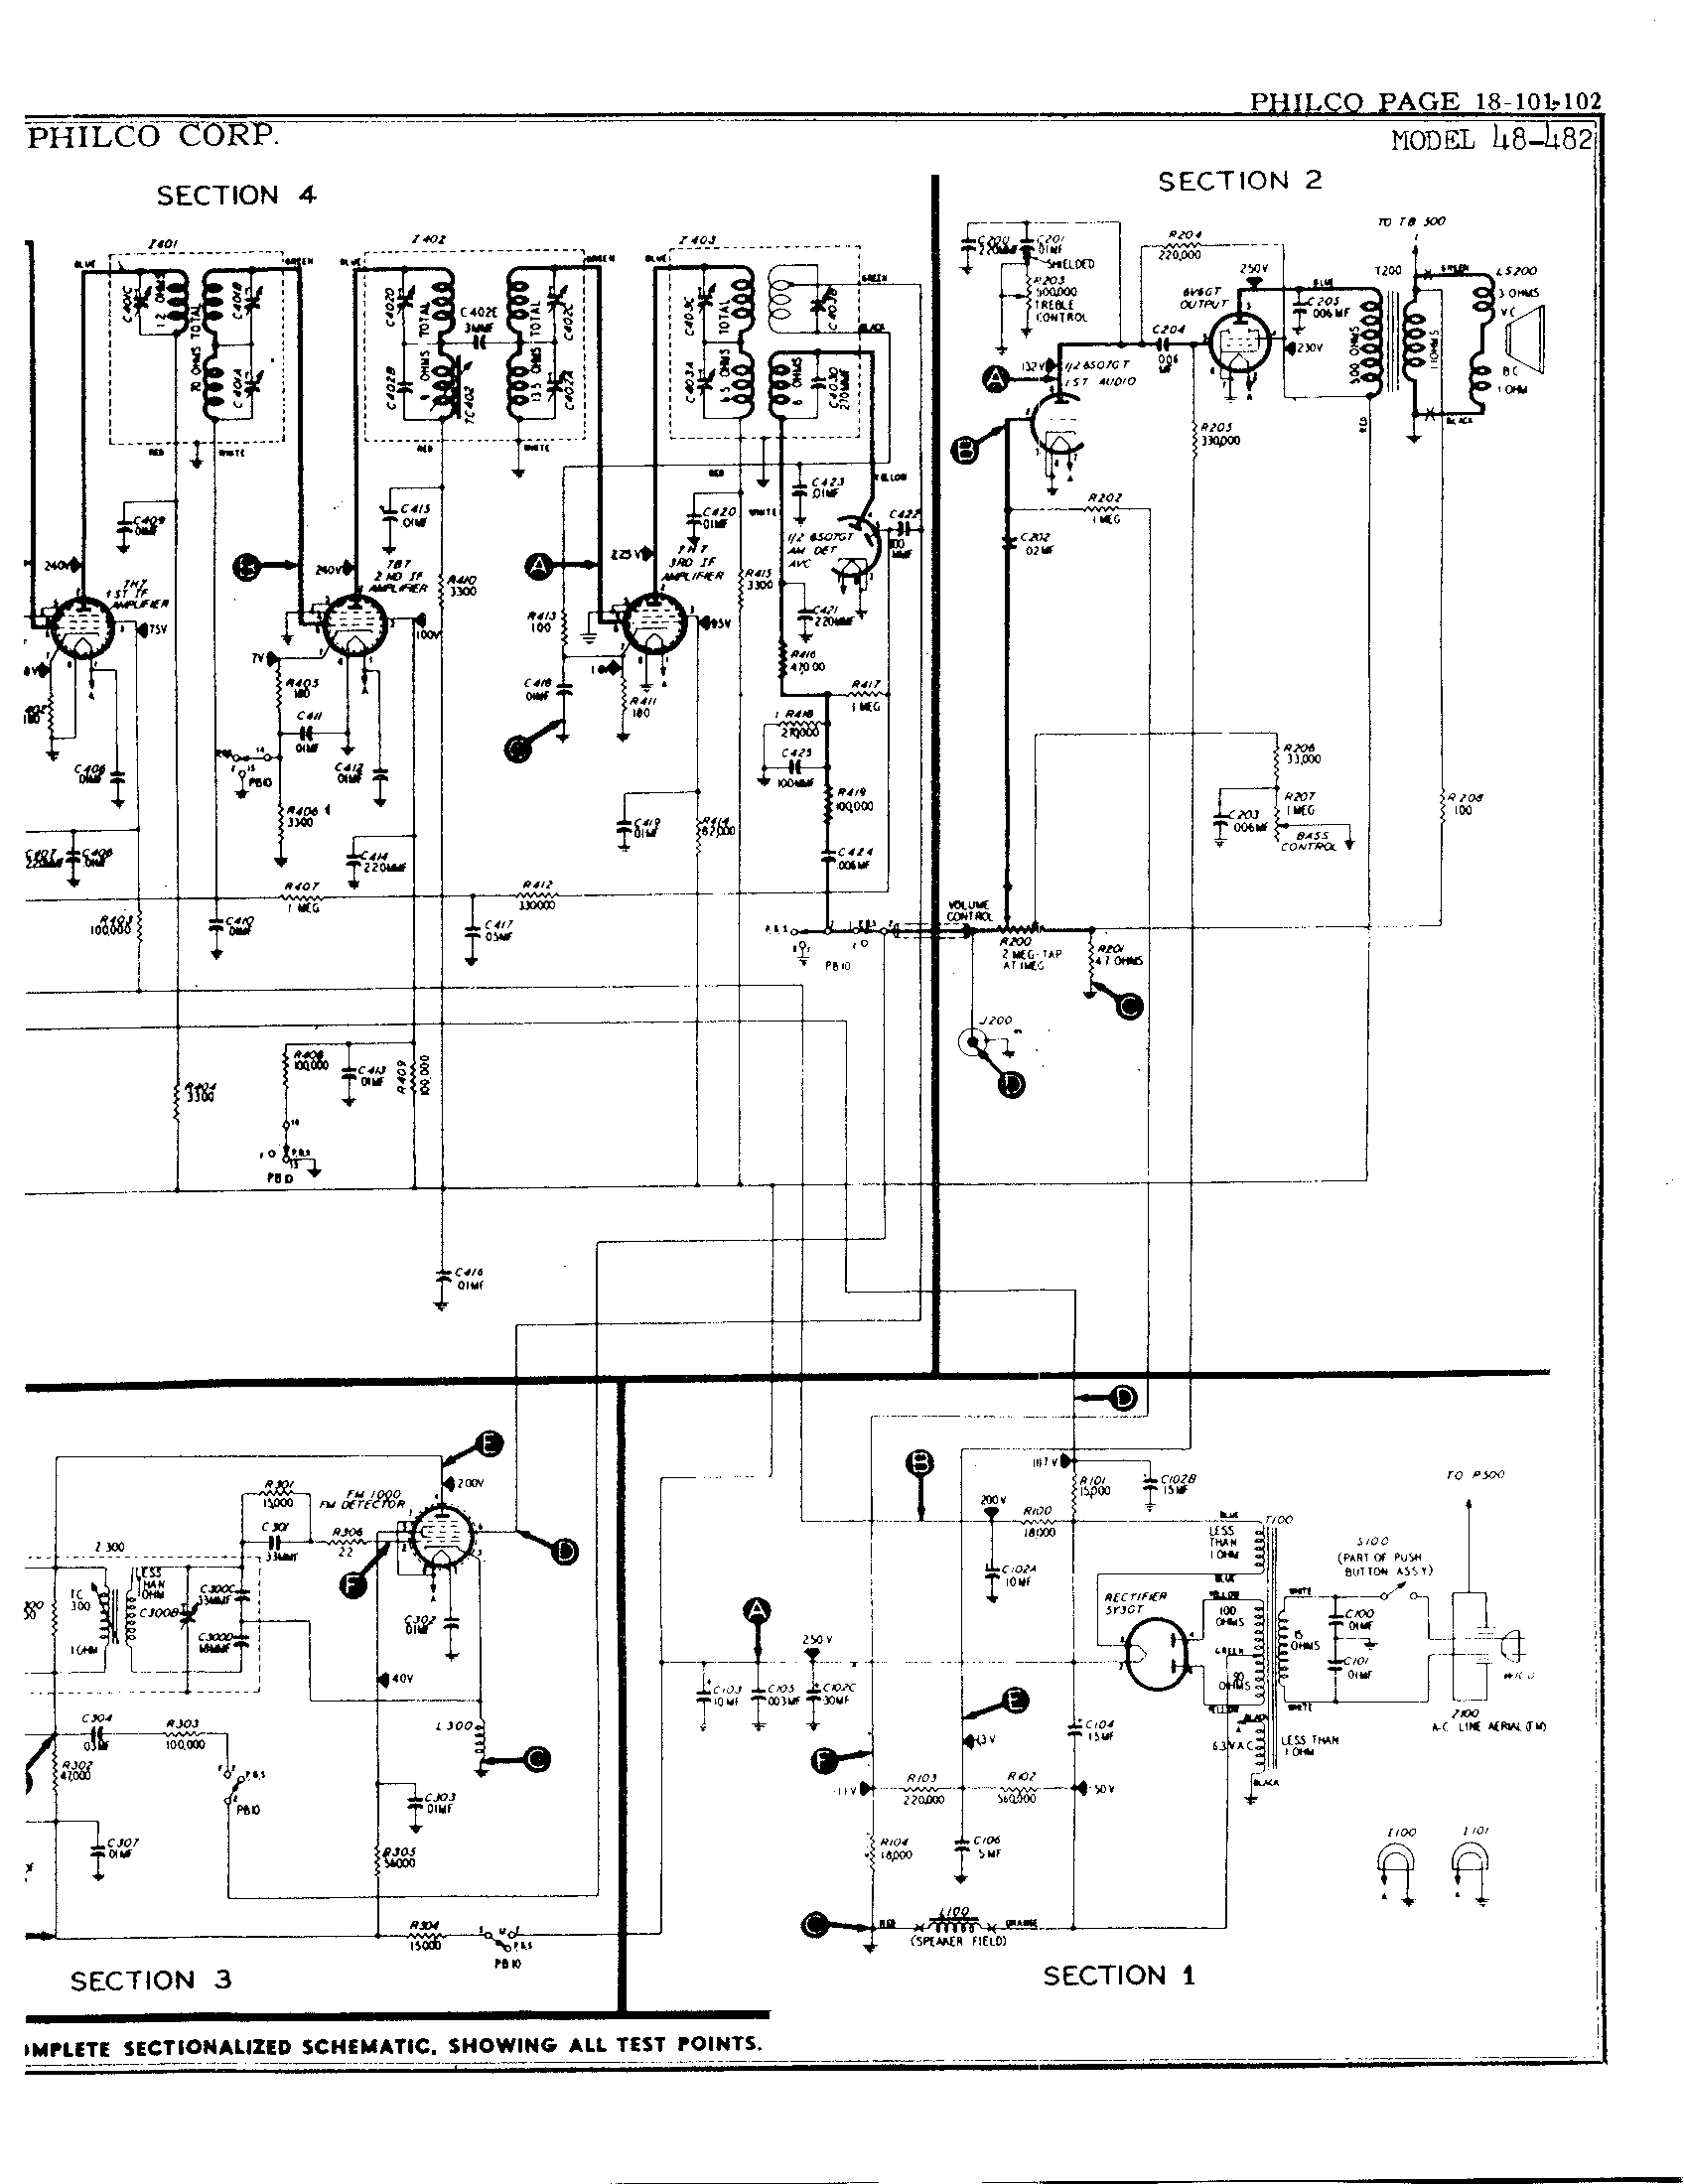 philco model 18 schematic